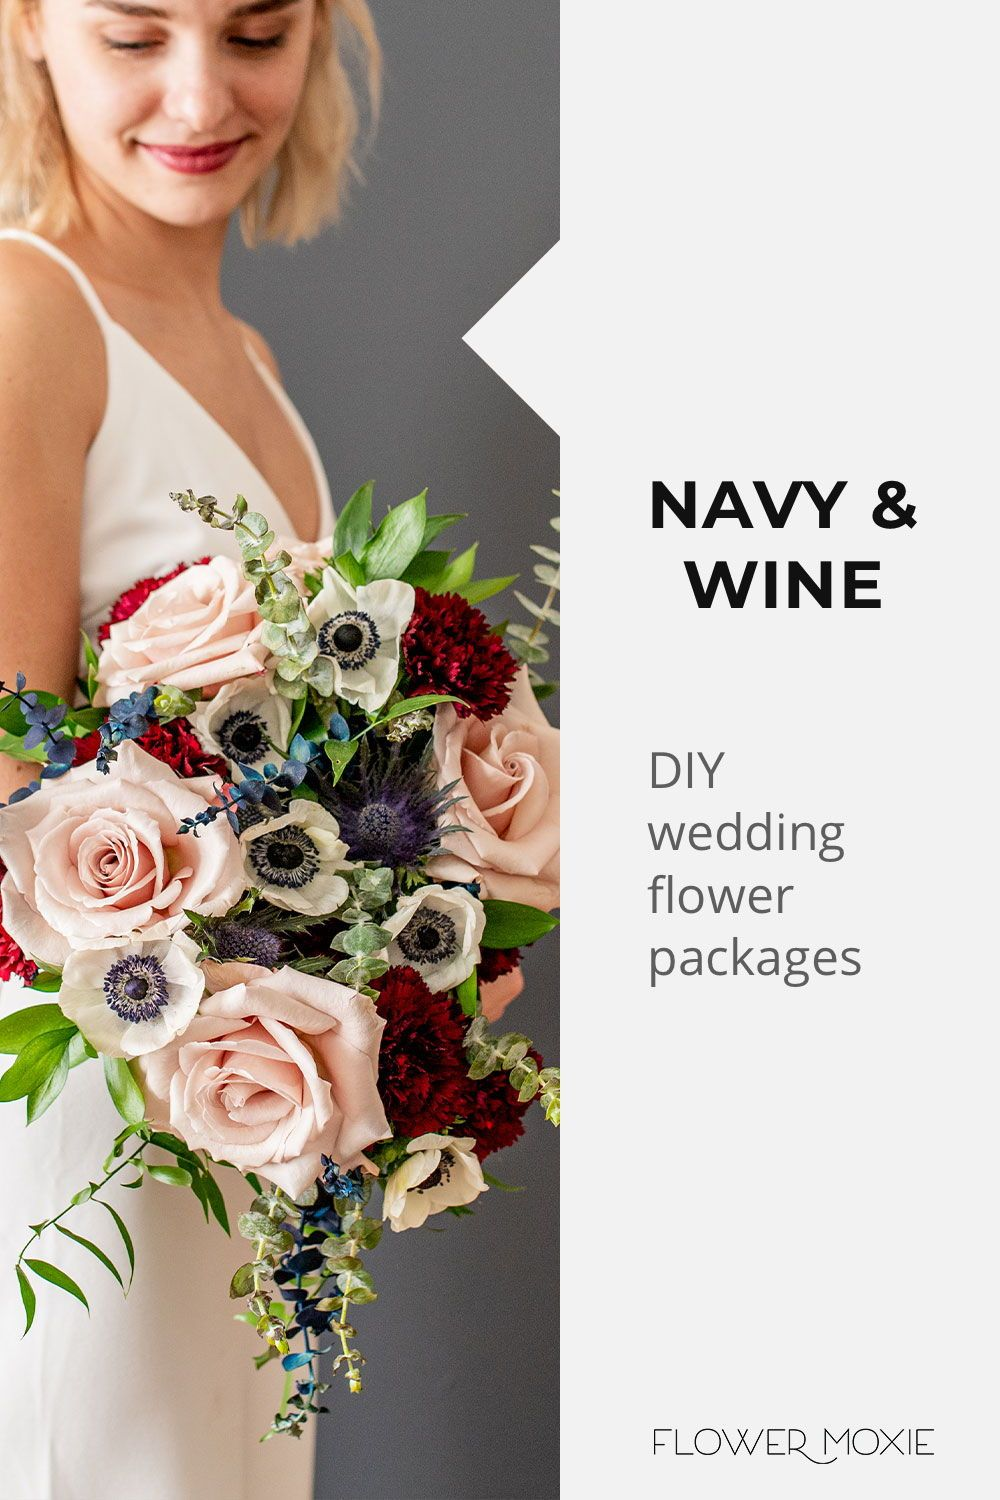 Get Inspired By Our Wedding Flower Packages Mix Match Flowers To Achieve The Look You Diy Bridesmaid Bouquet Online Wedding Flowers Wedding Flower Packages